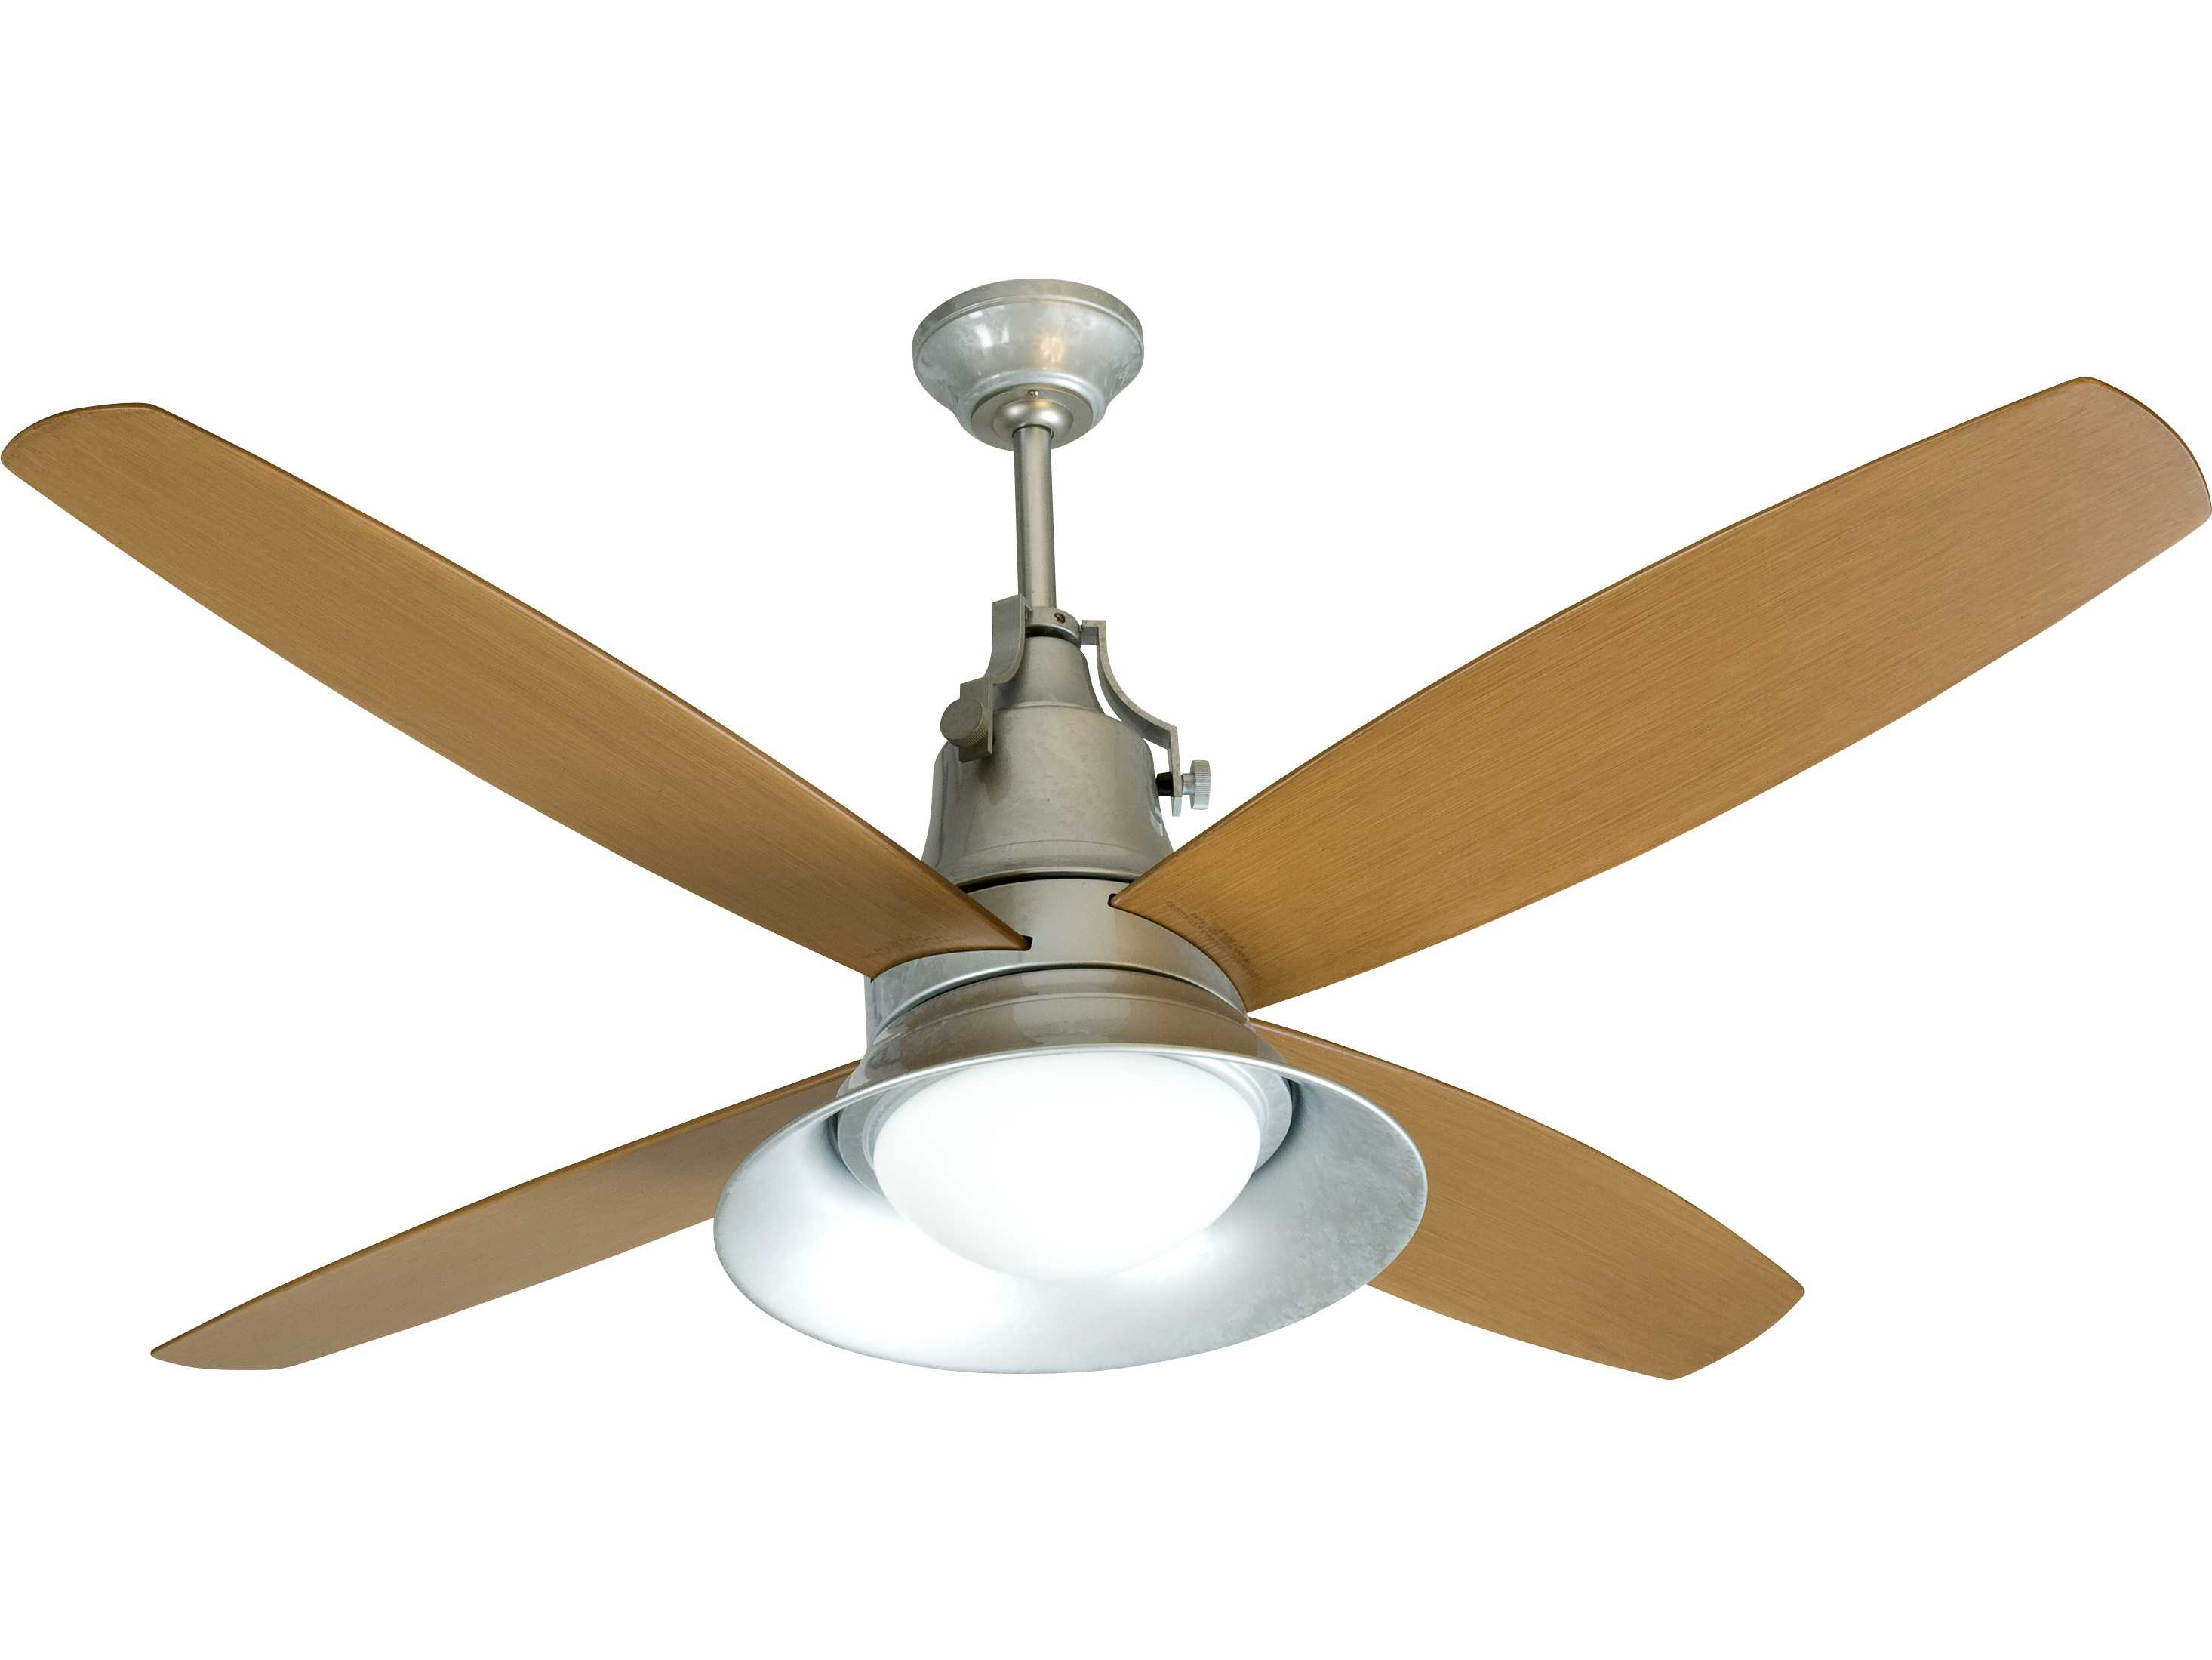 Craftmade Union Galvanized Two Light 52 Inch Wide Ceiling Fan with